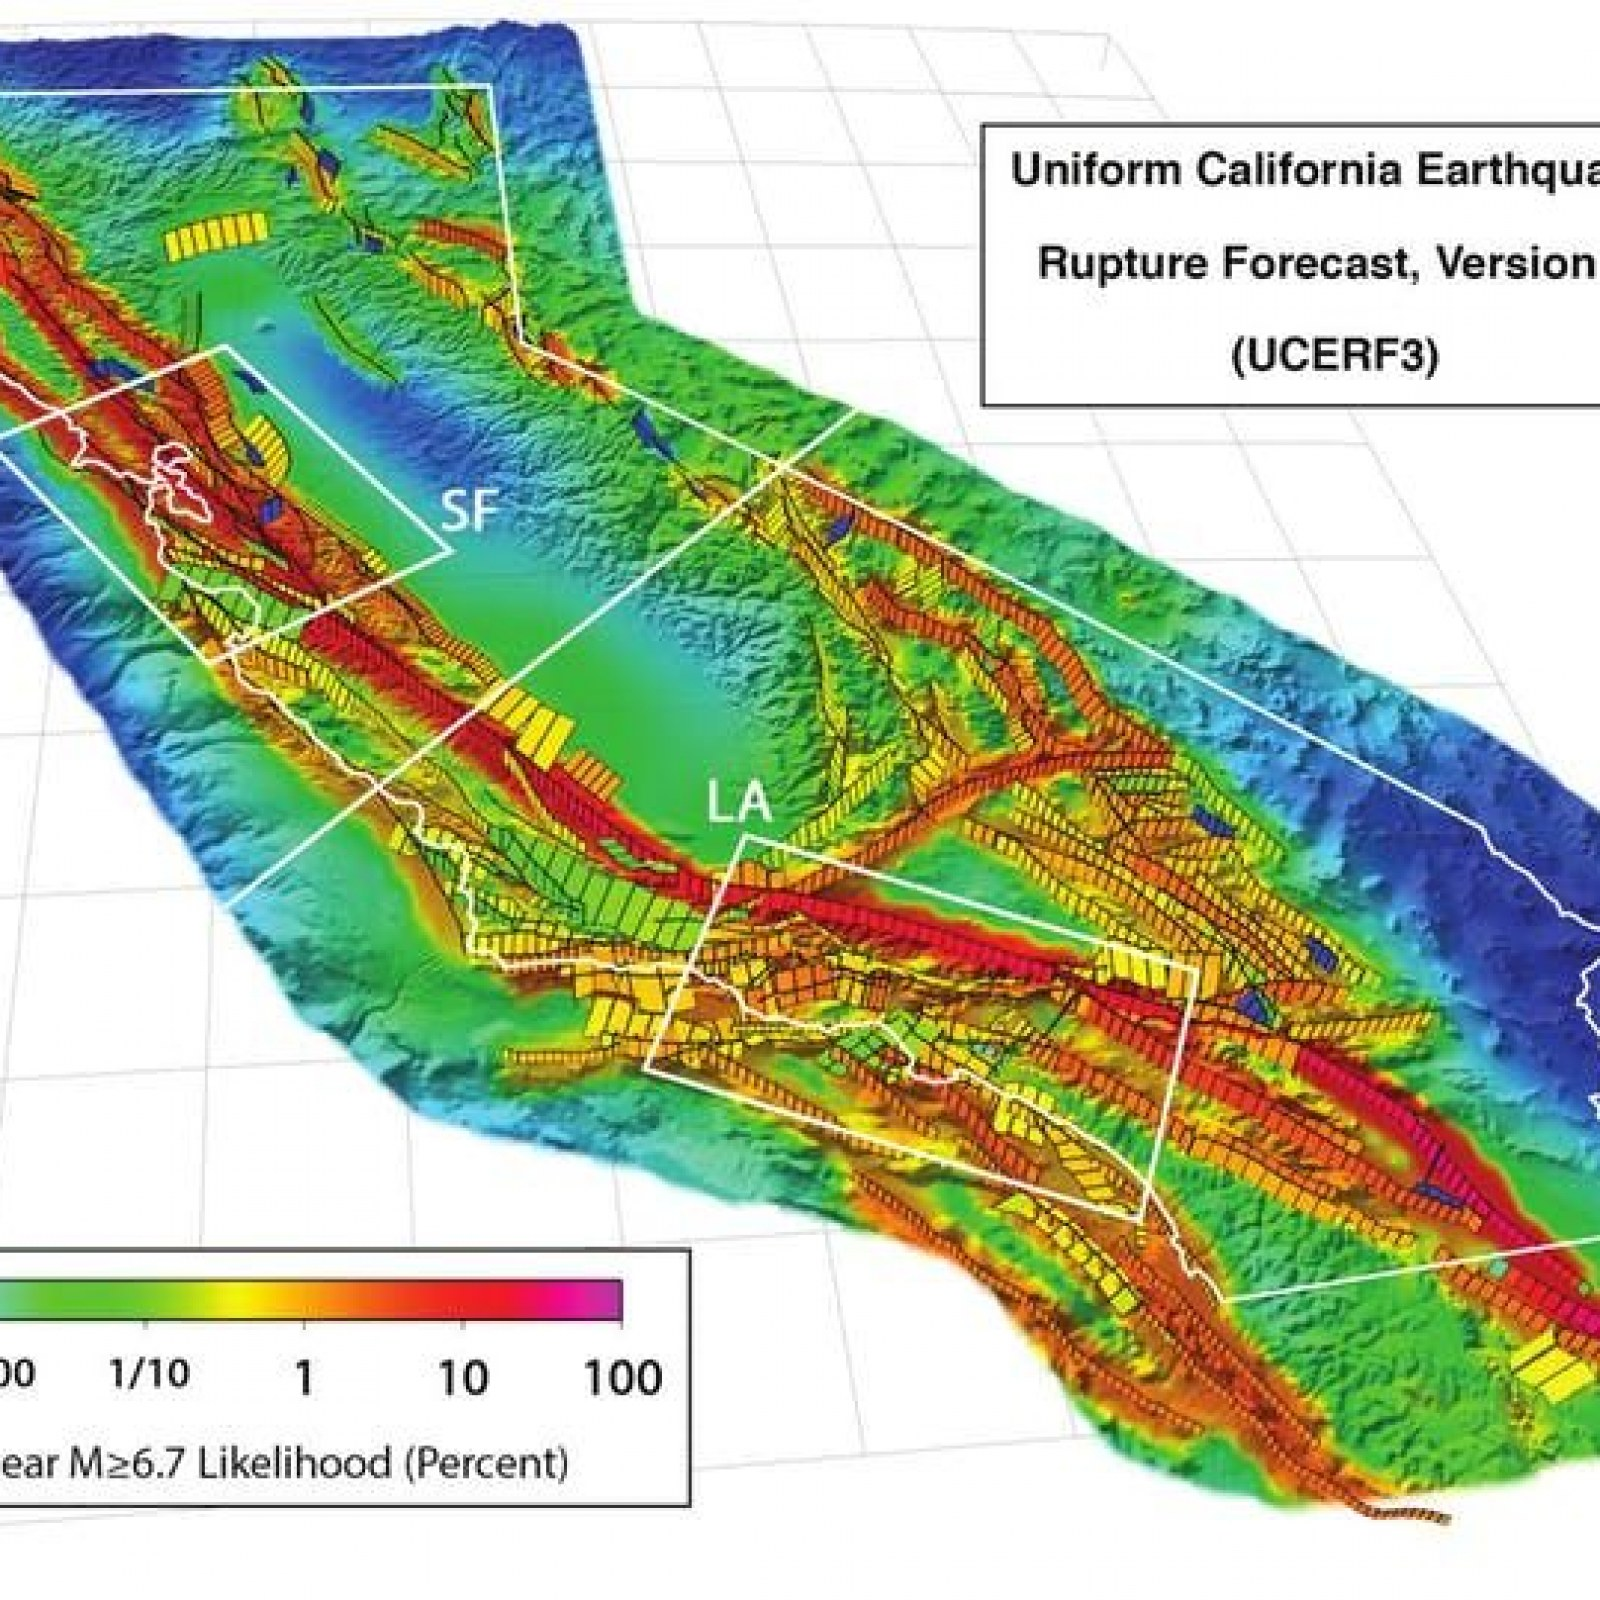 San Andreas Fault Will Probably Produce a Major Earthquake ...